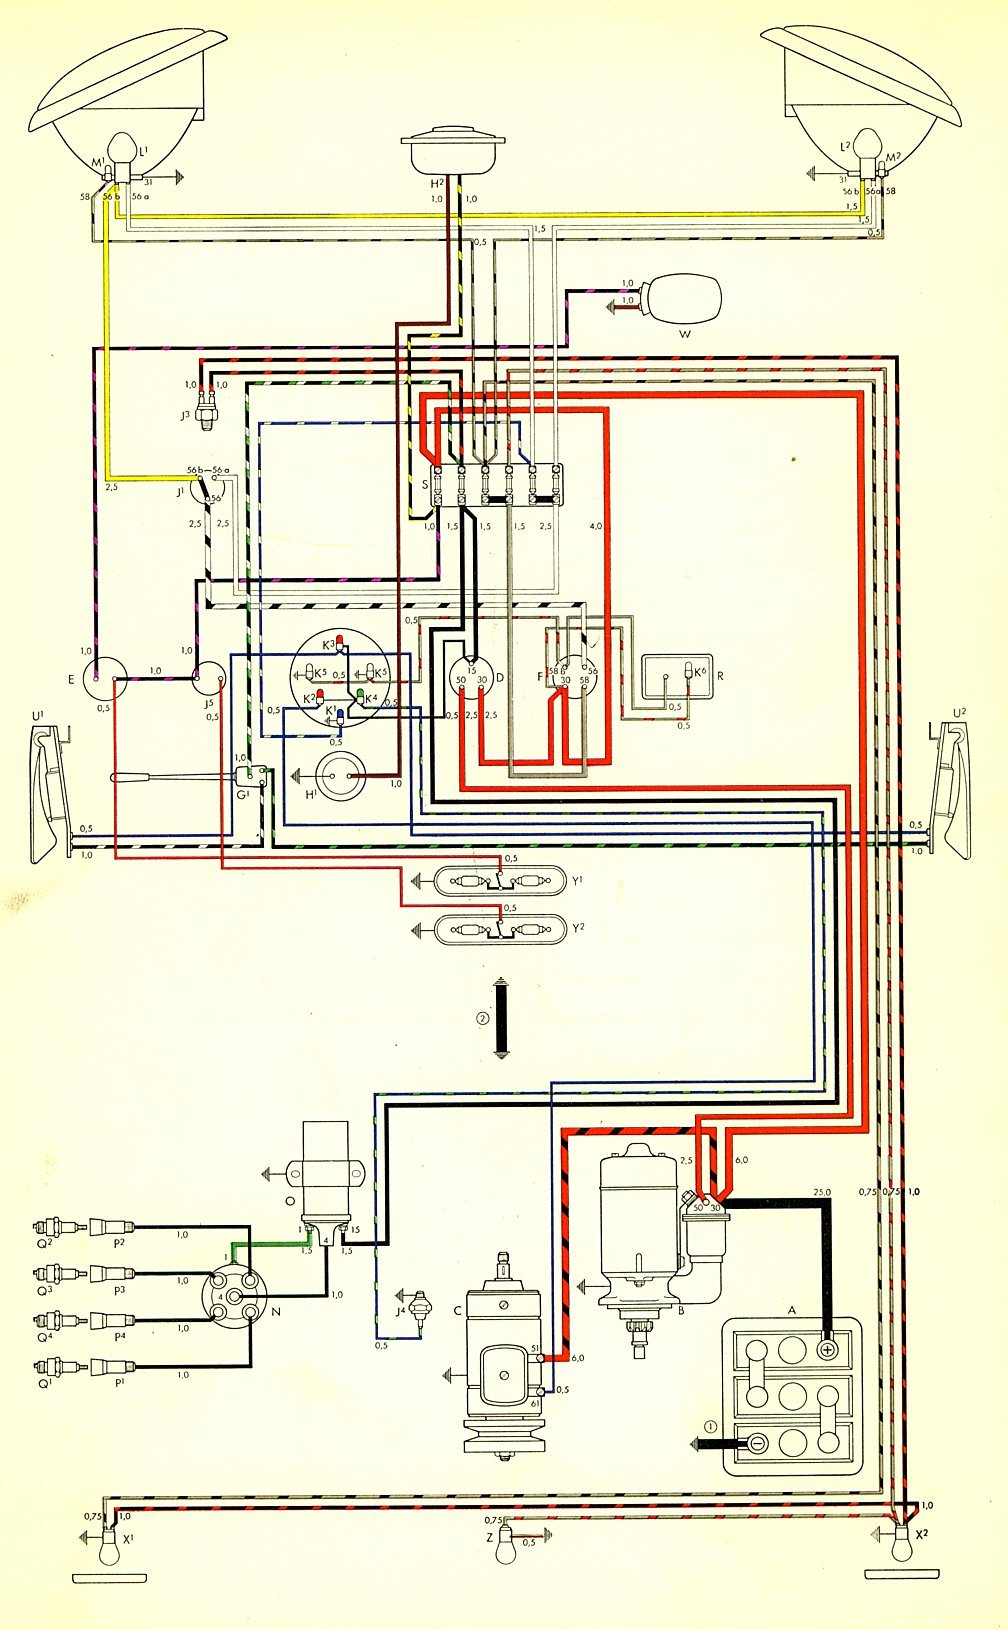 bus_59 wiring diagram for 1971 vw bus readingrat net 1978 vw bus fuse box diagram at aneh.co